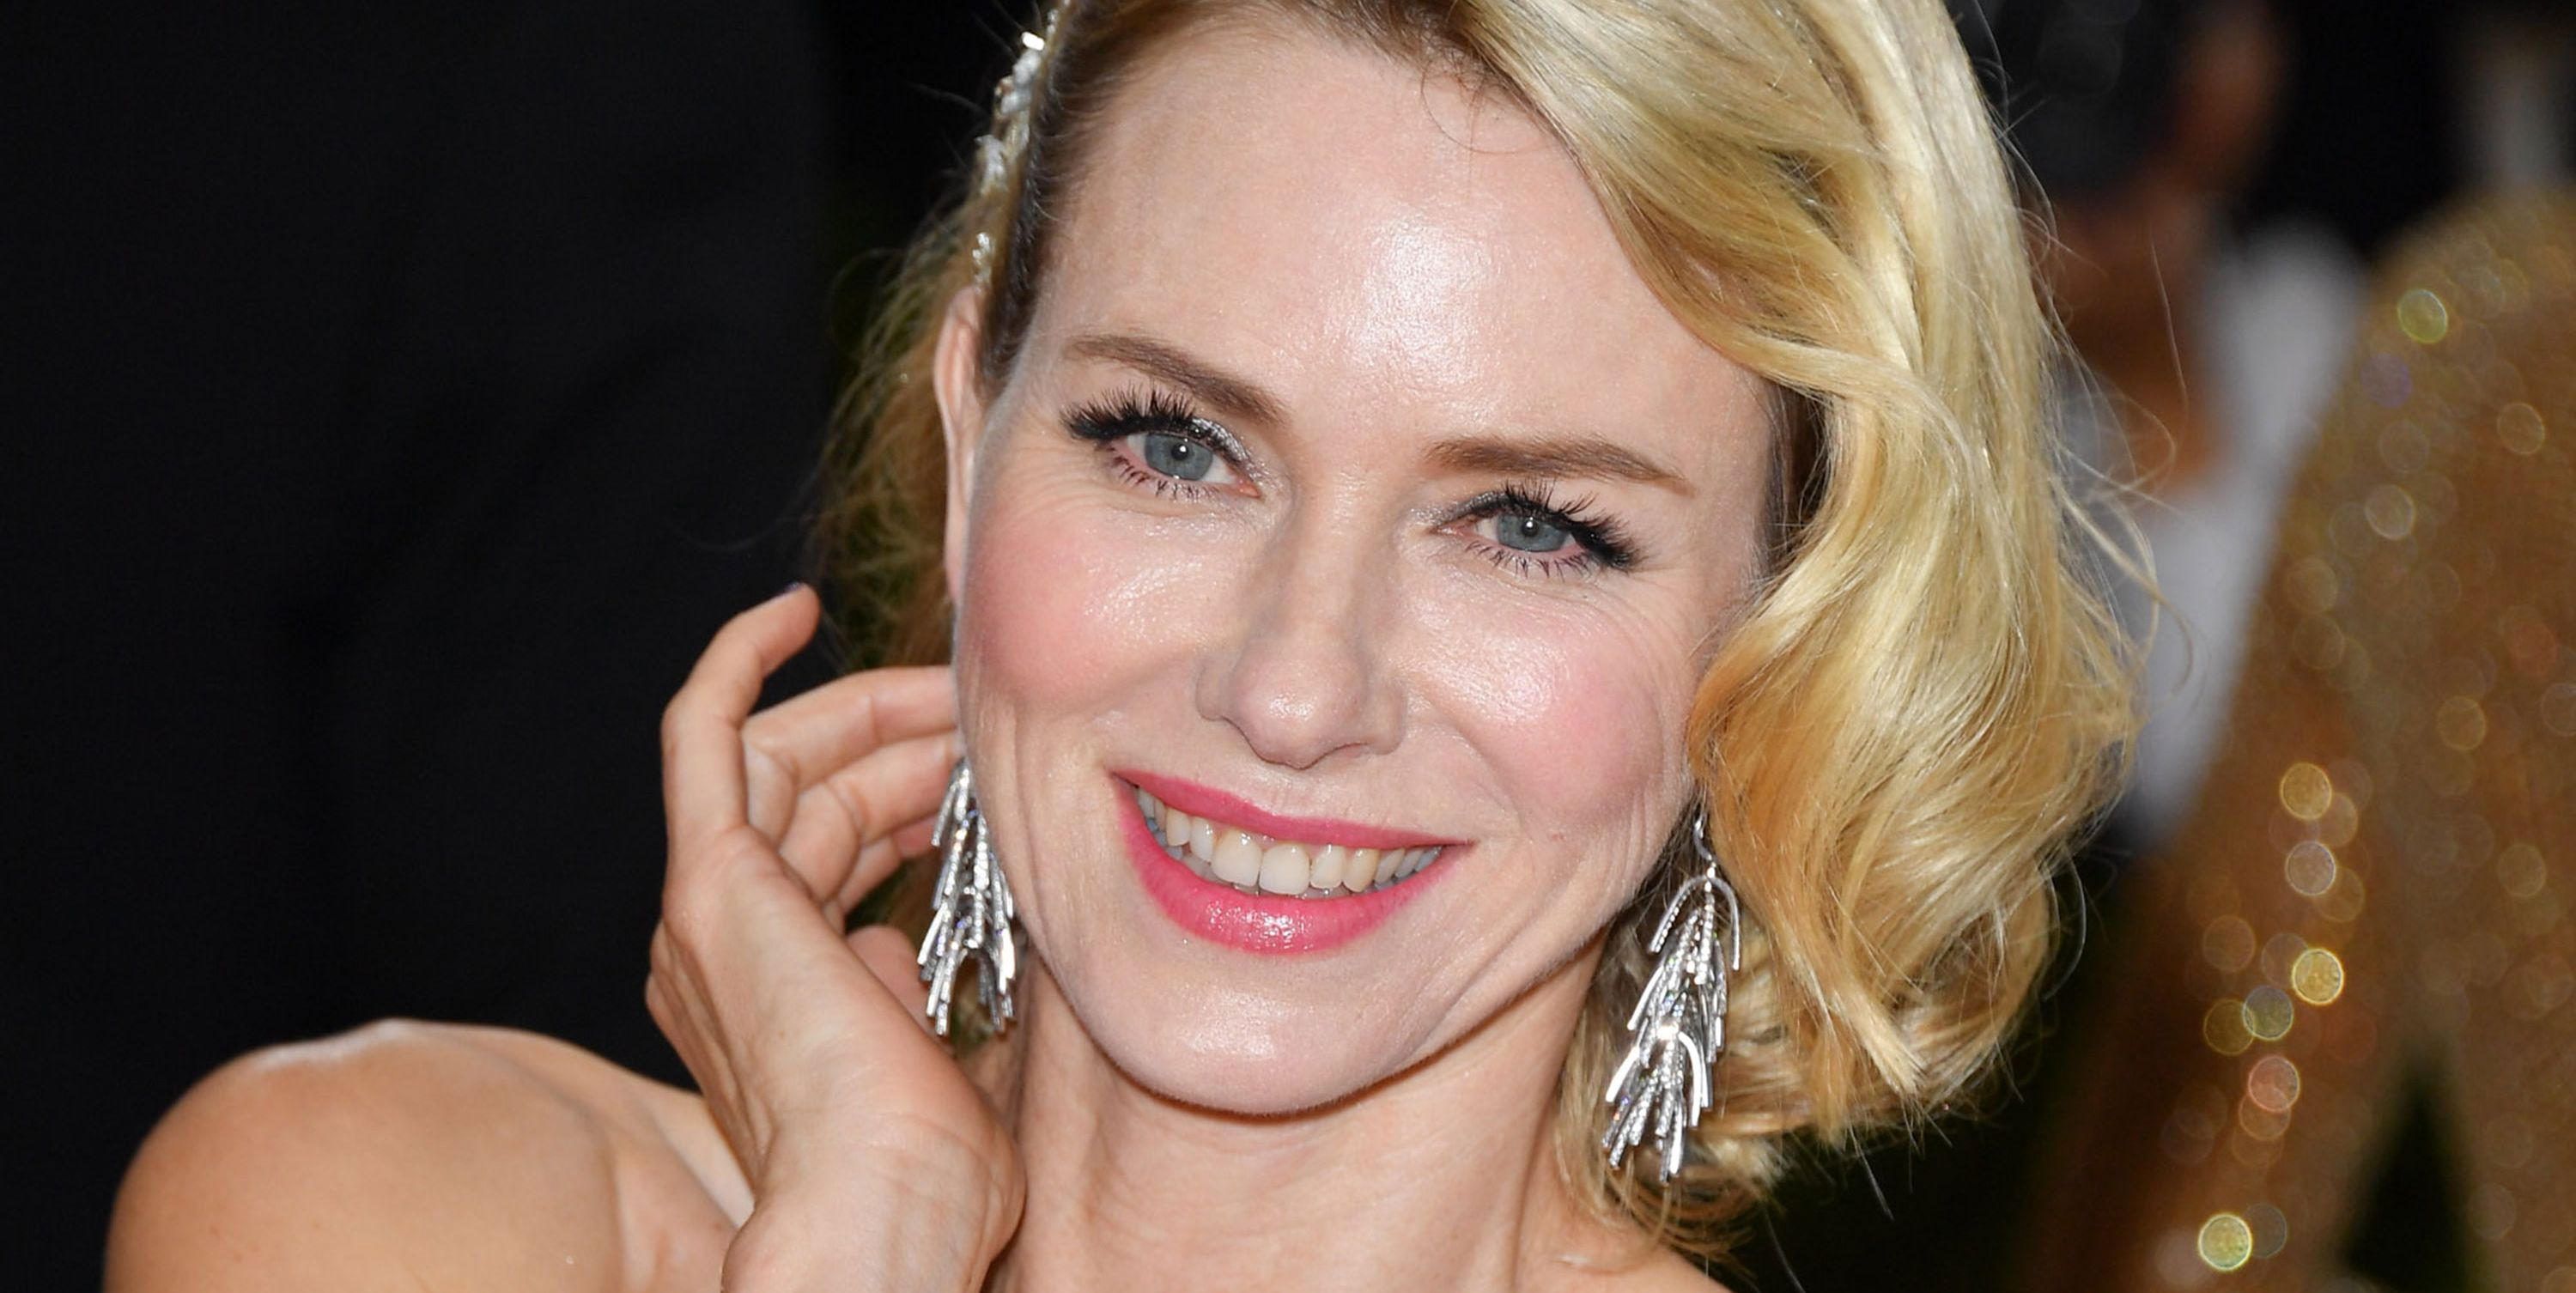 Naomi Watts wasn't invited to the Met Gala this year